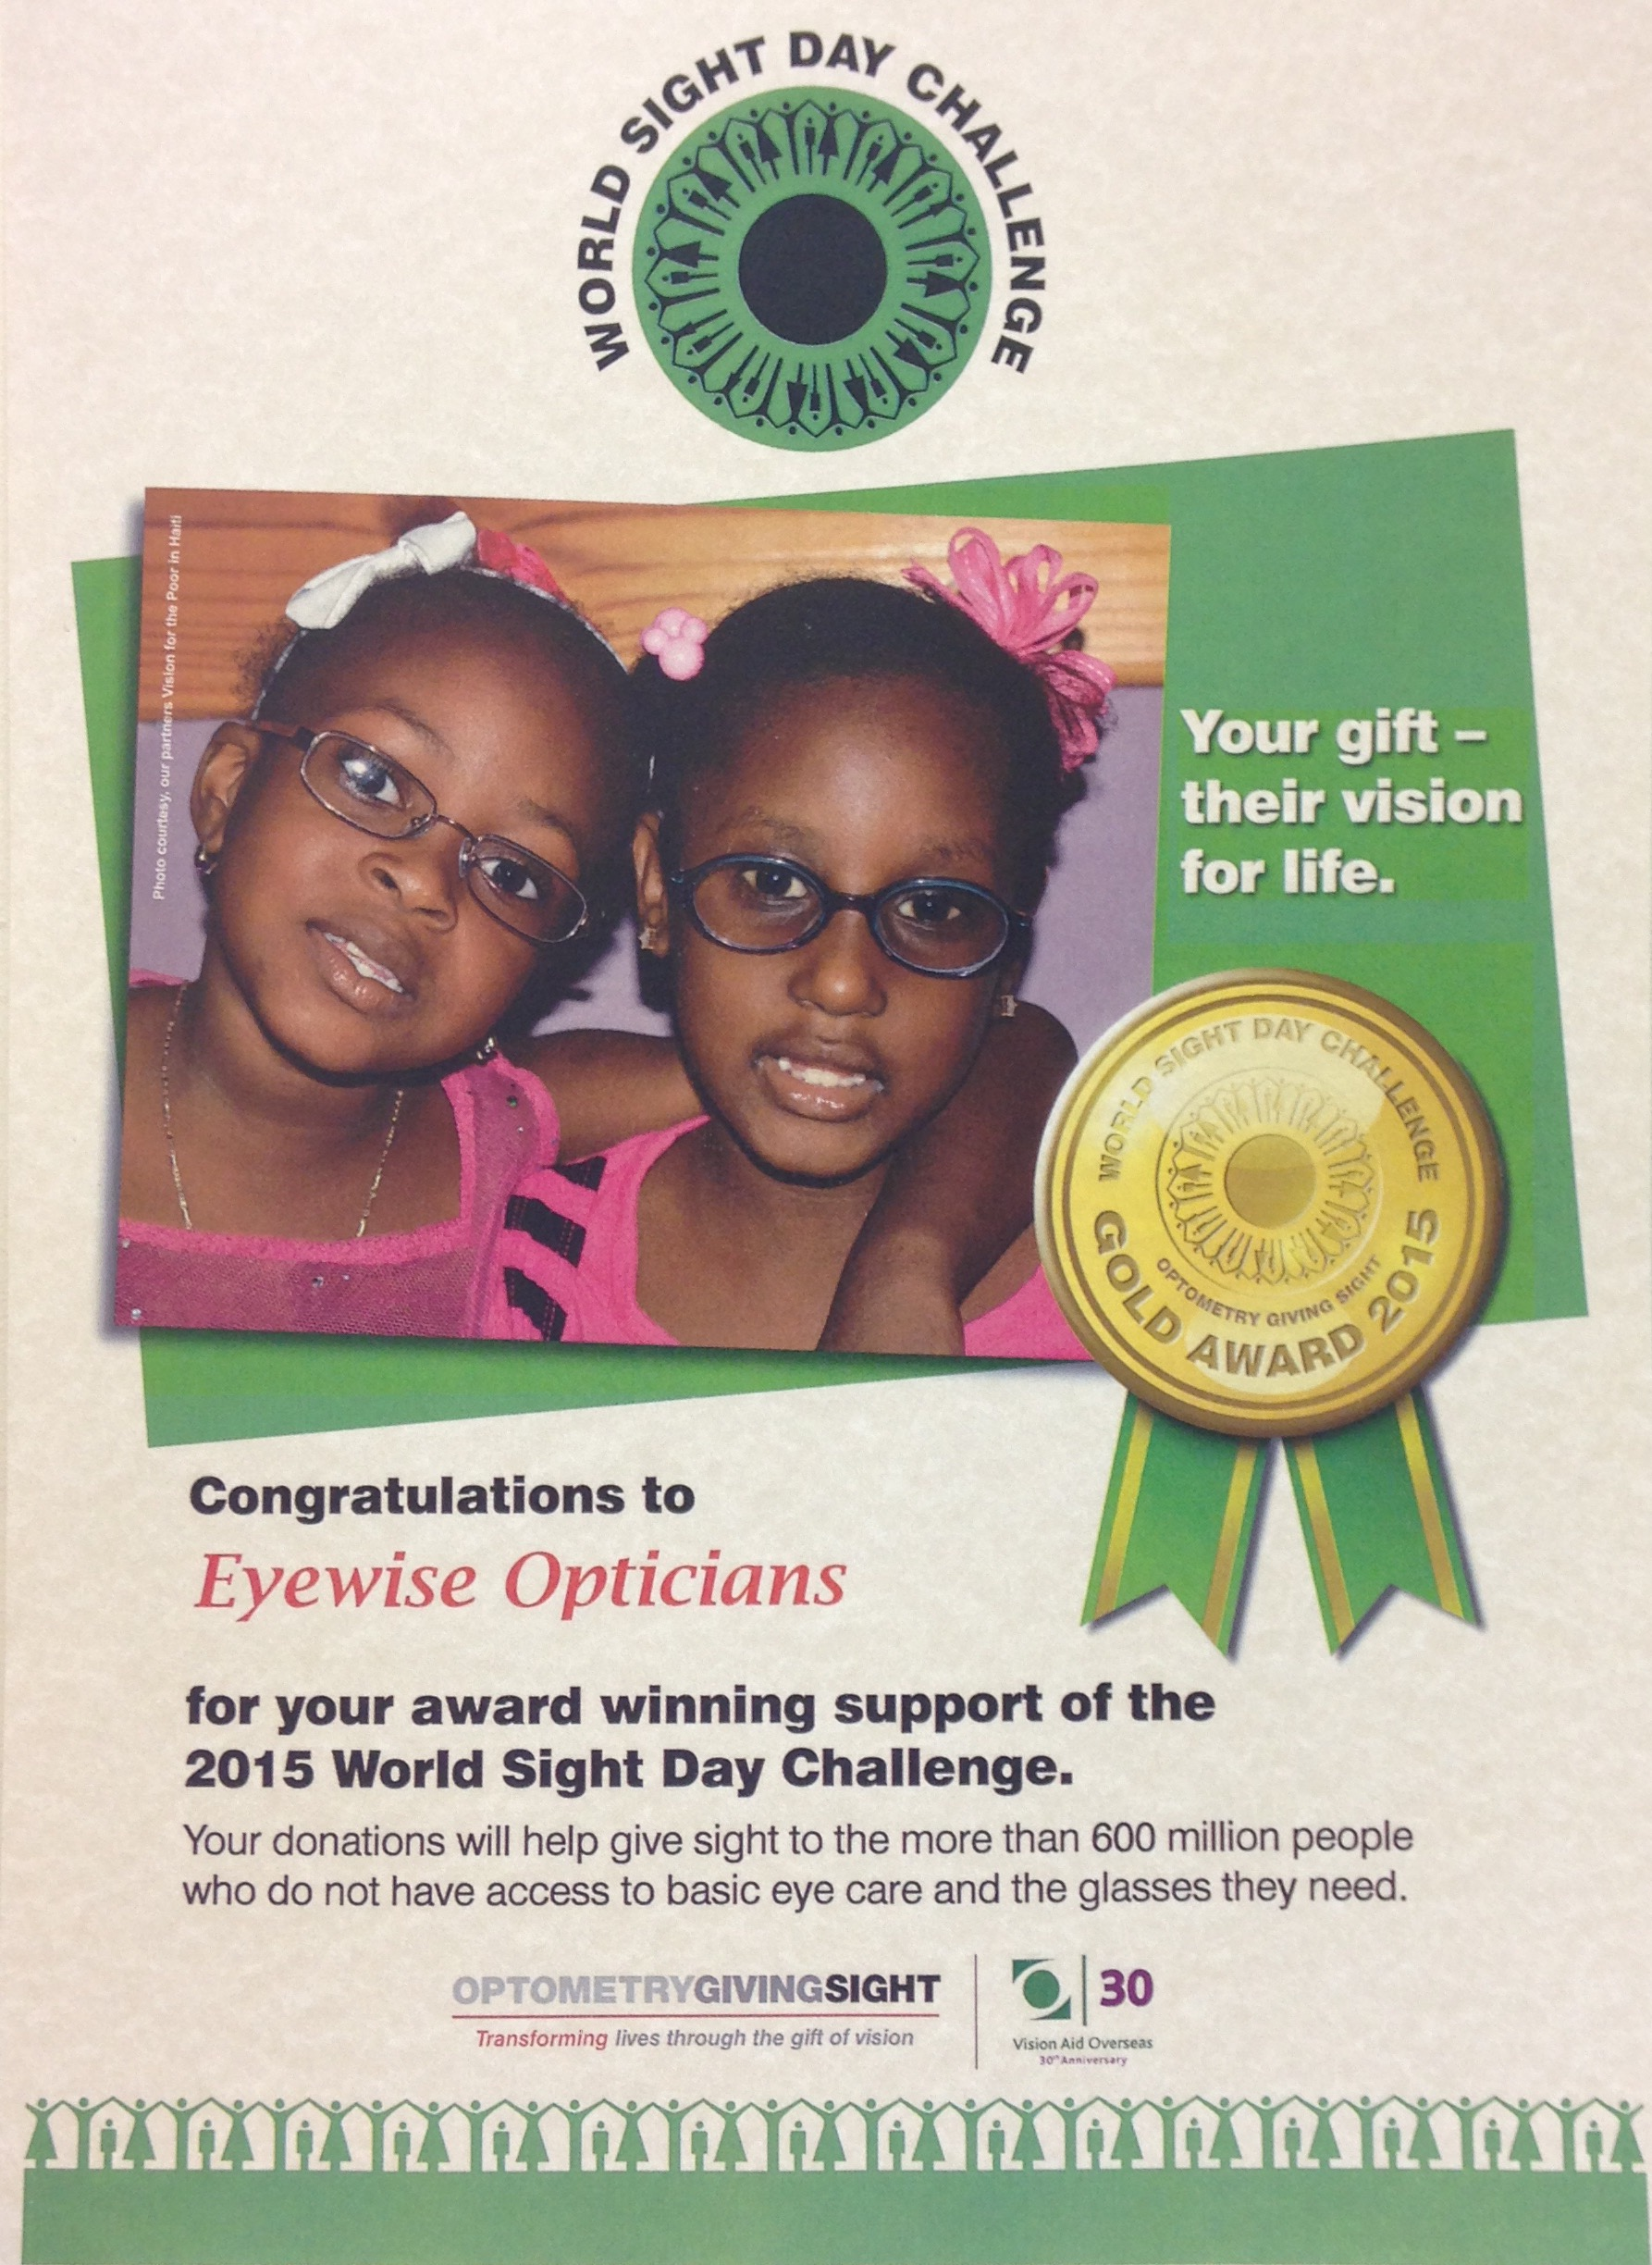 World Sight Day Challenge 2015 gold award poster